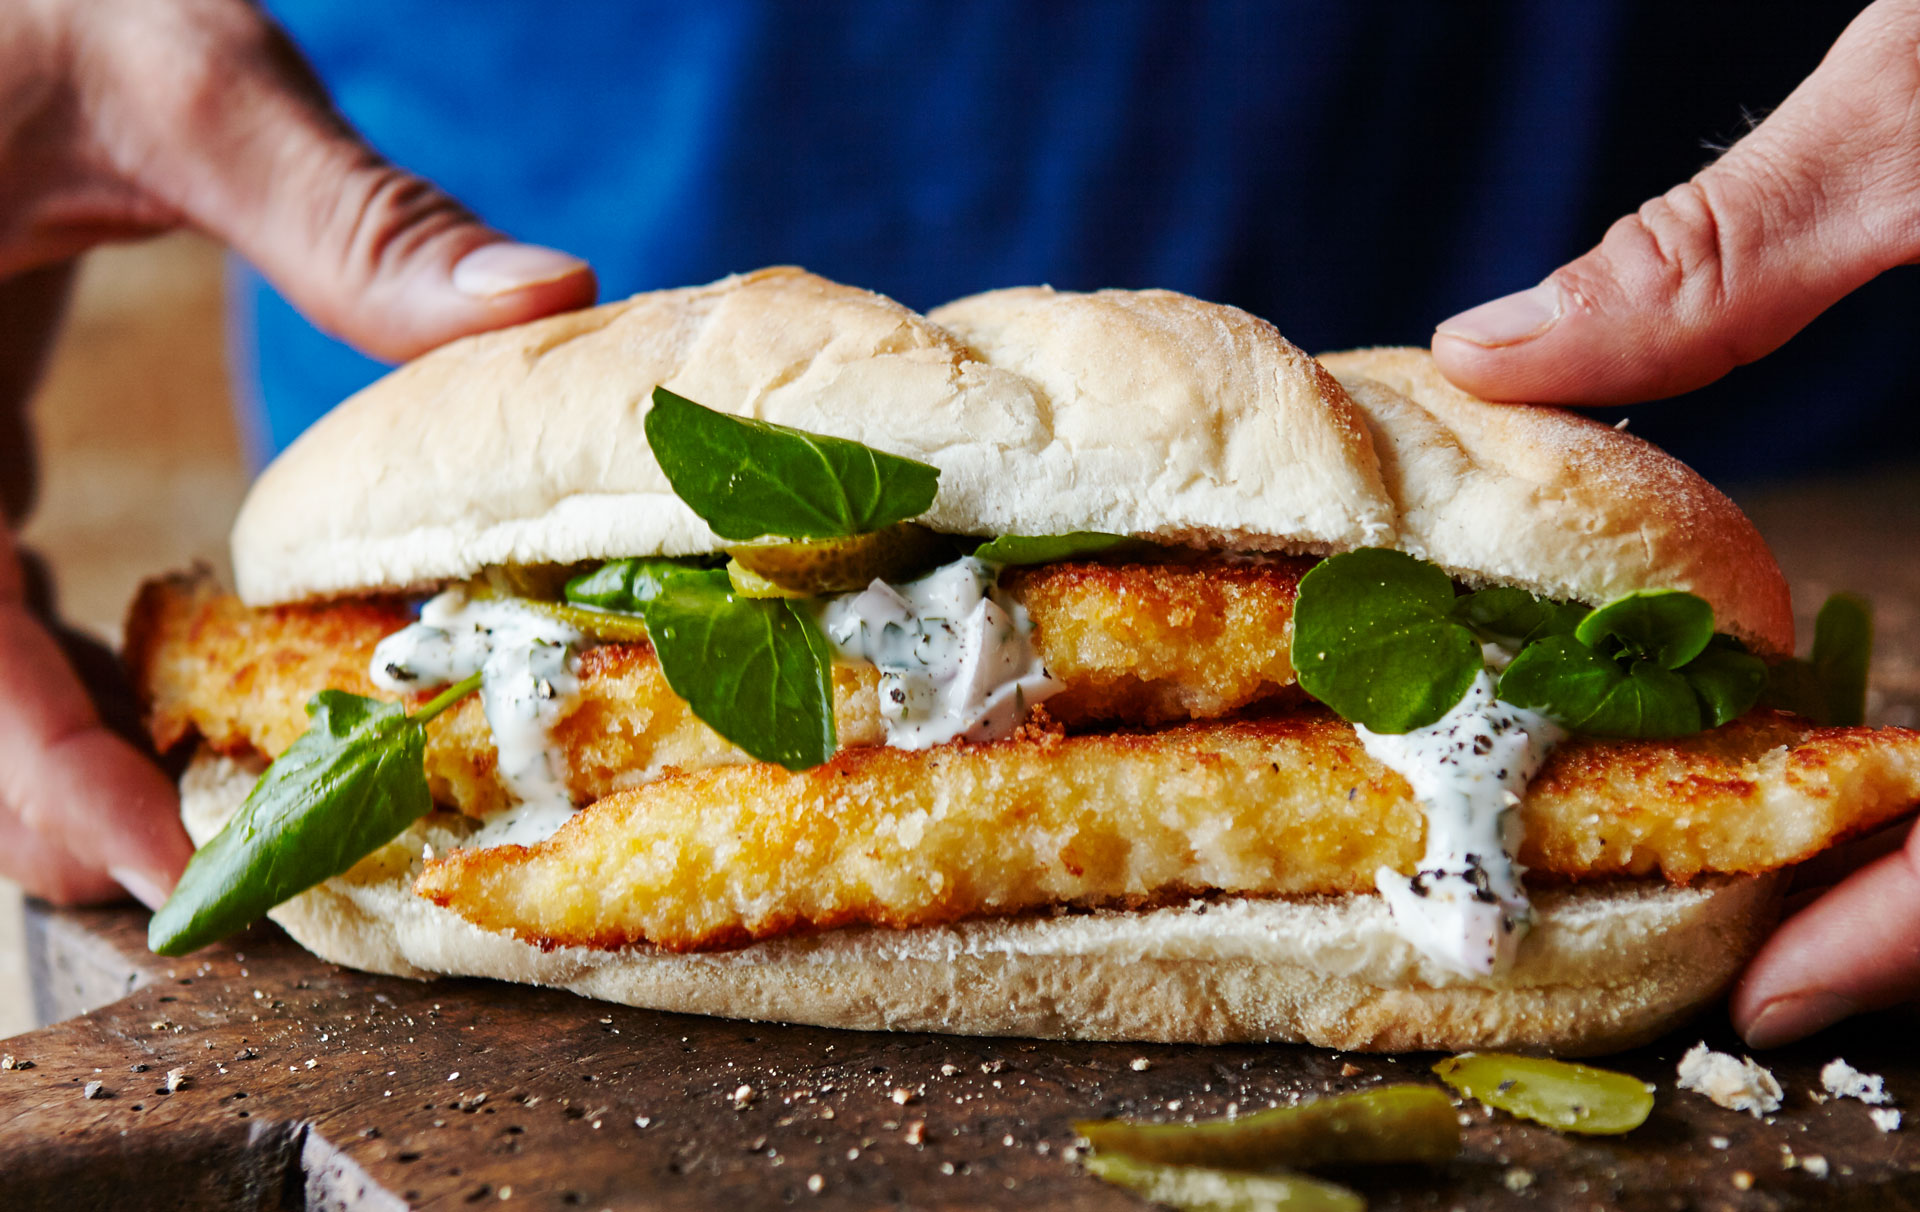 Joe Wicks Fish Finger Sandwich Recipe Goodtoknow